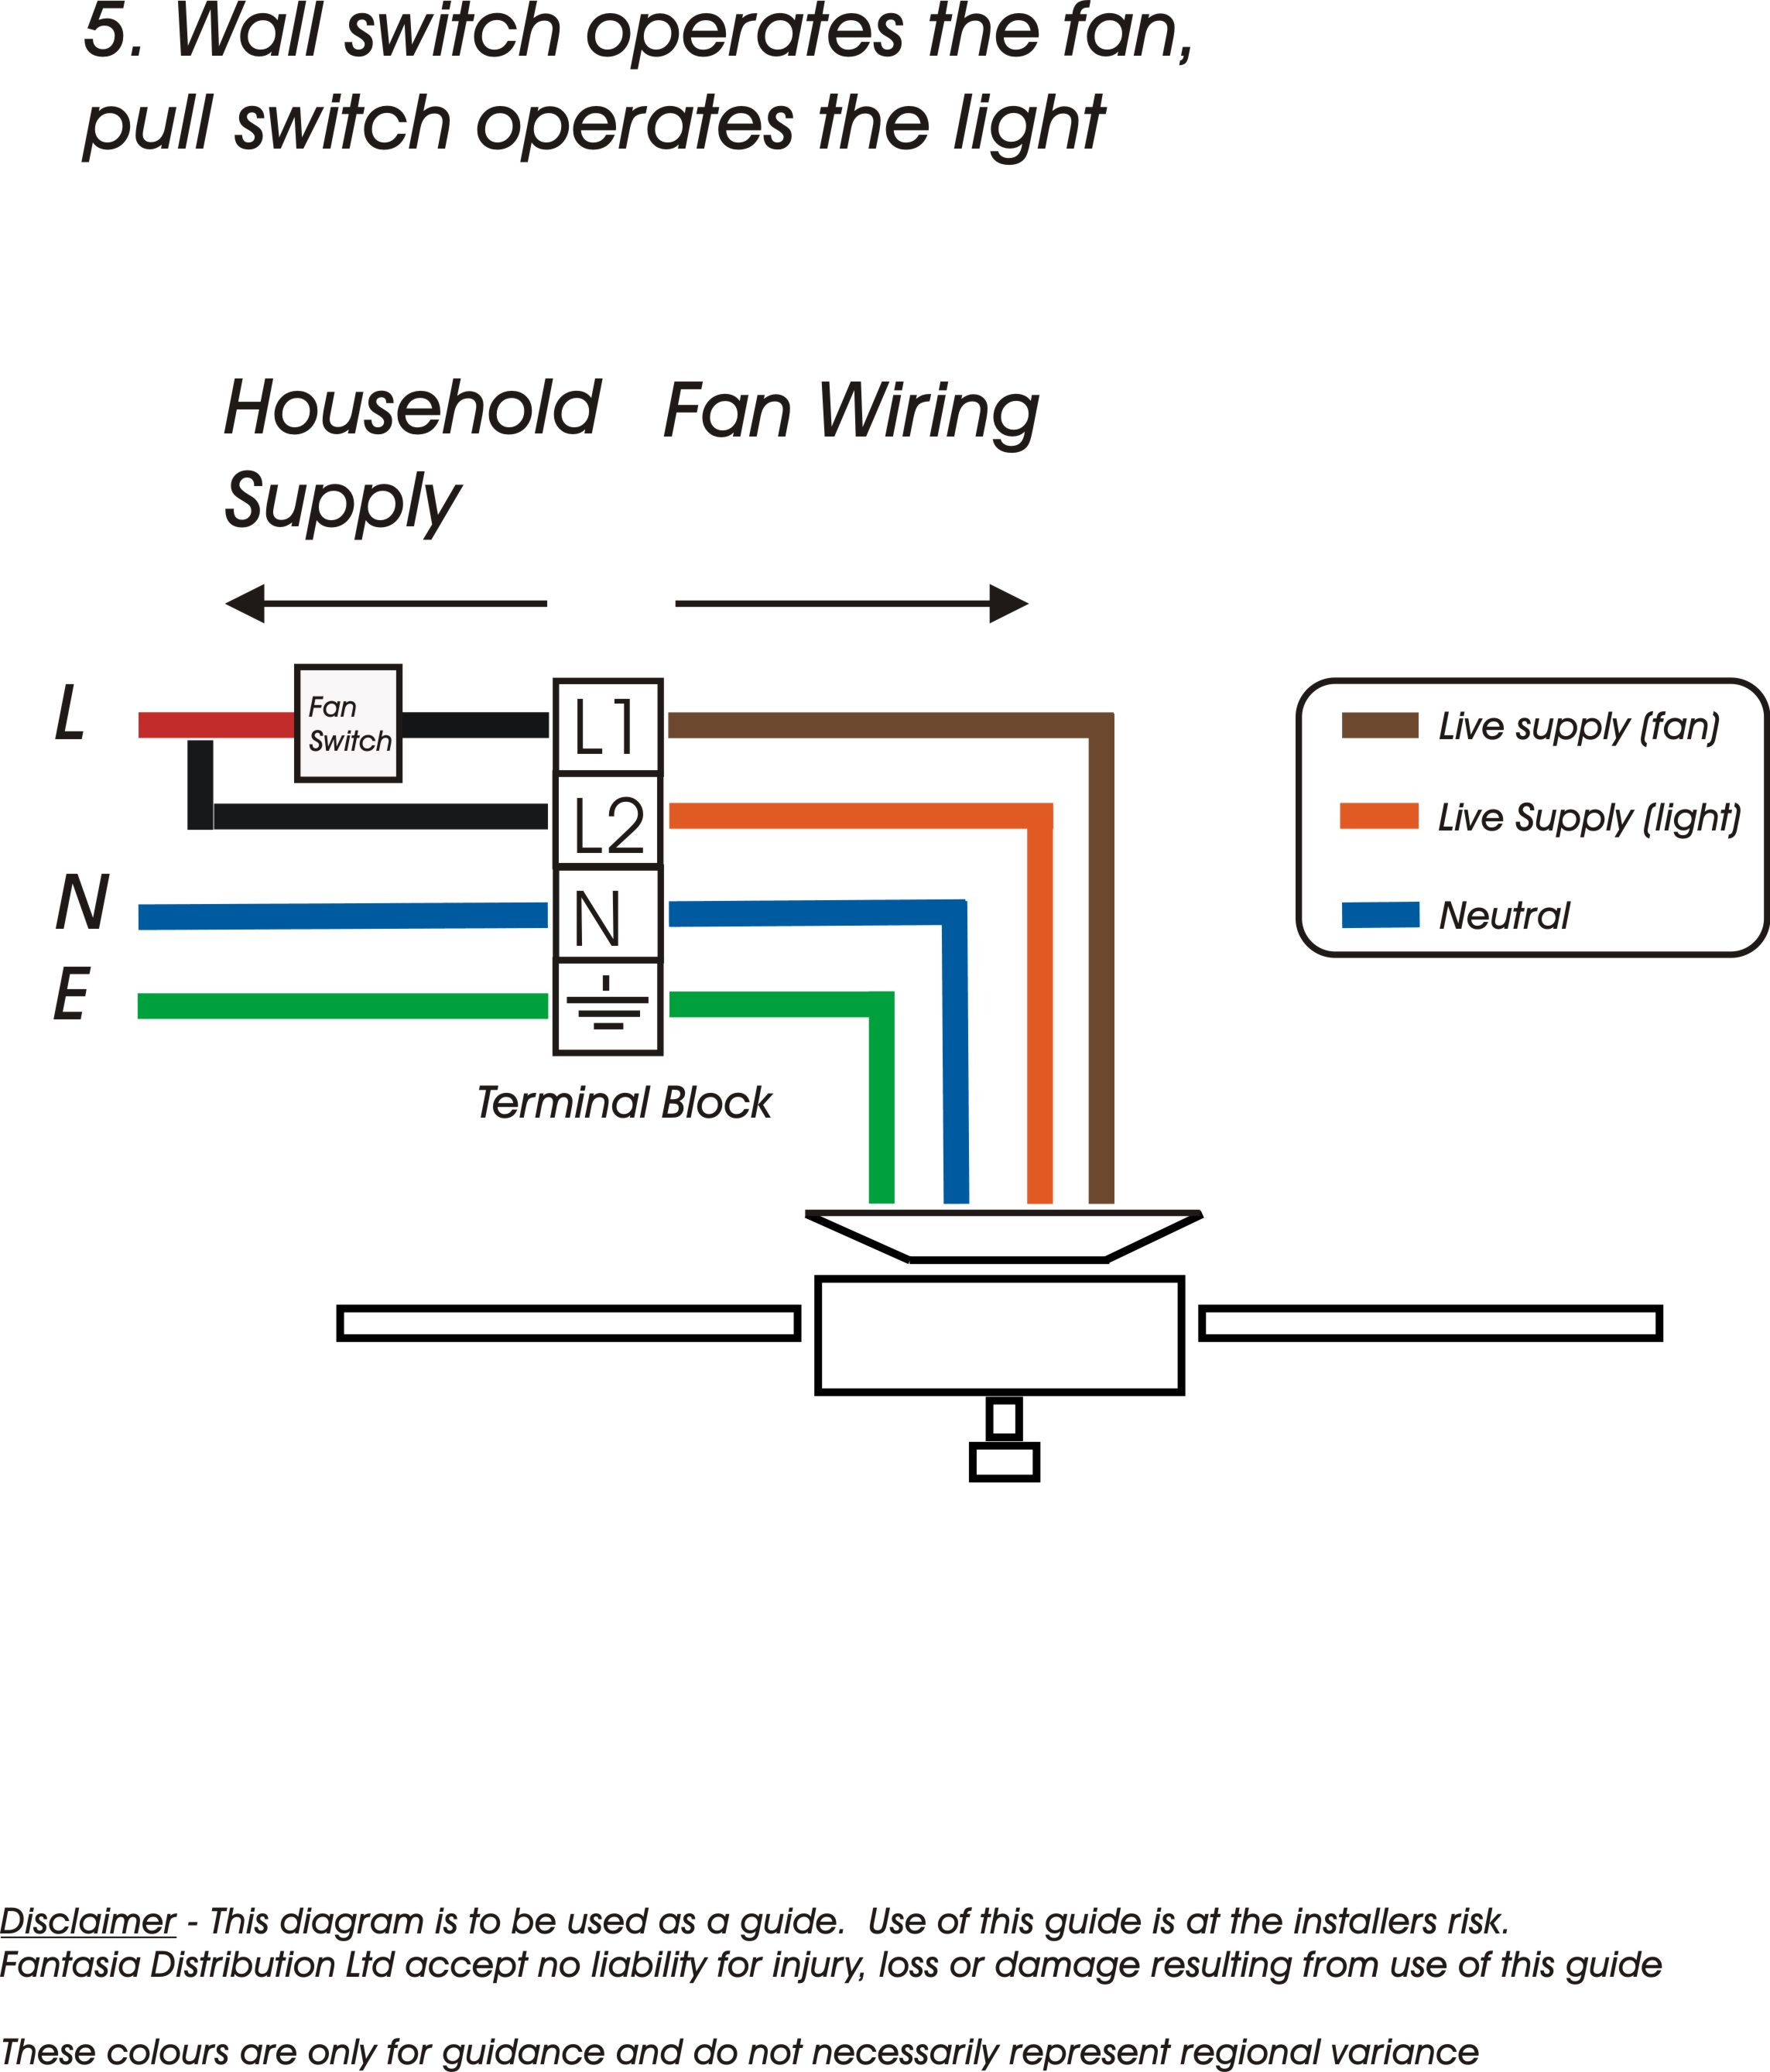 bahama ceiling fan wiring diagram bahama image 5 wire fan switch diagram 5 wiring diagrams collections on bahama ceiling fan wiring diagram